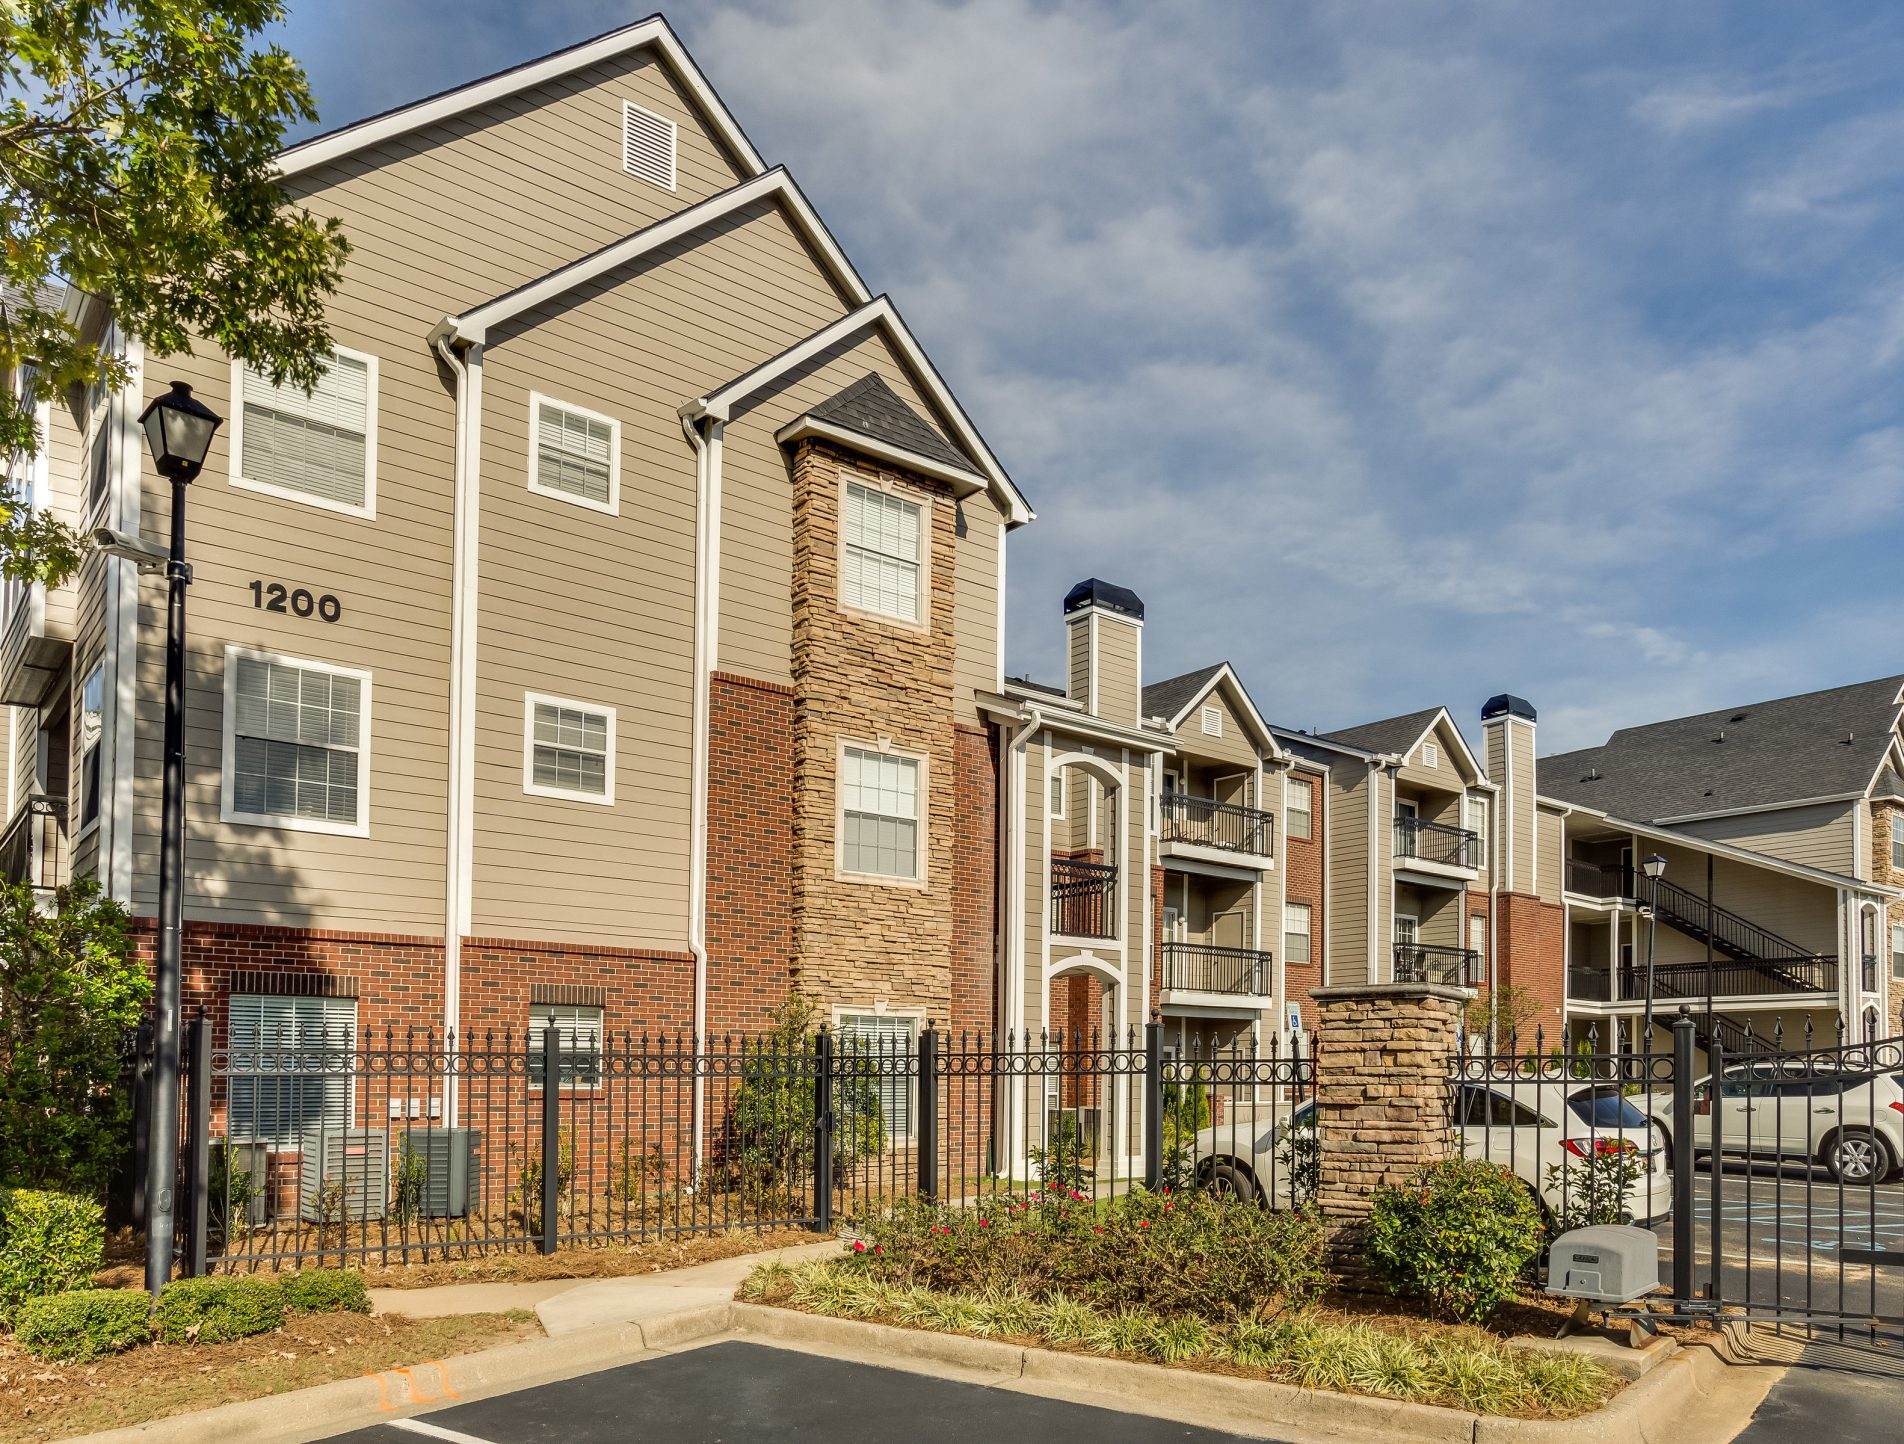 Cheap one bedroom apartments birmingham al - 1 bedroom apartments in hoover al ...